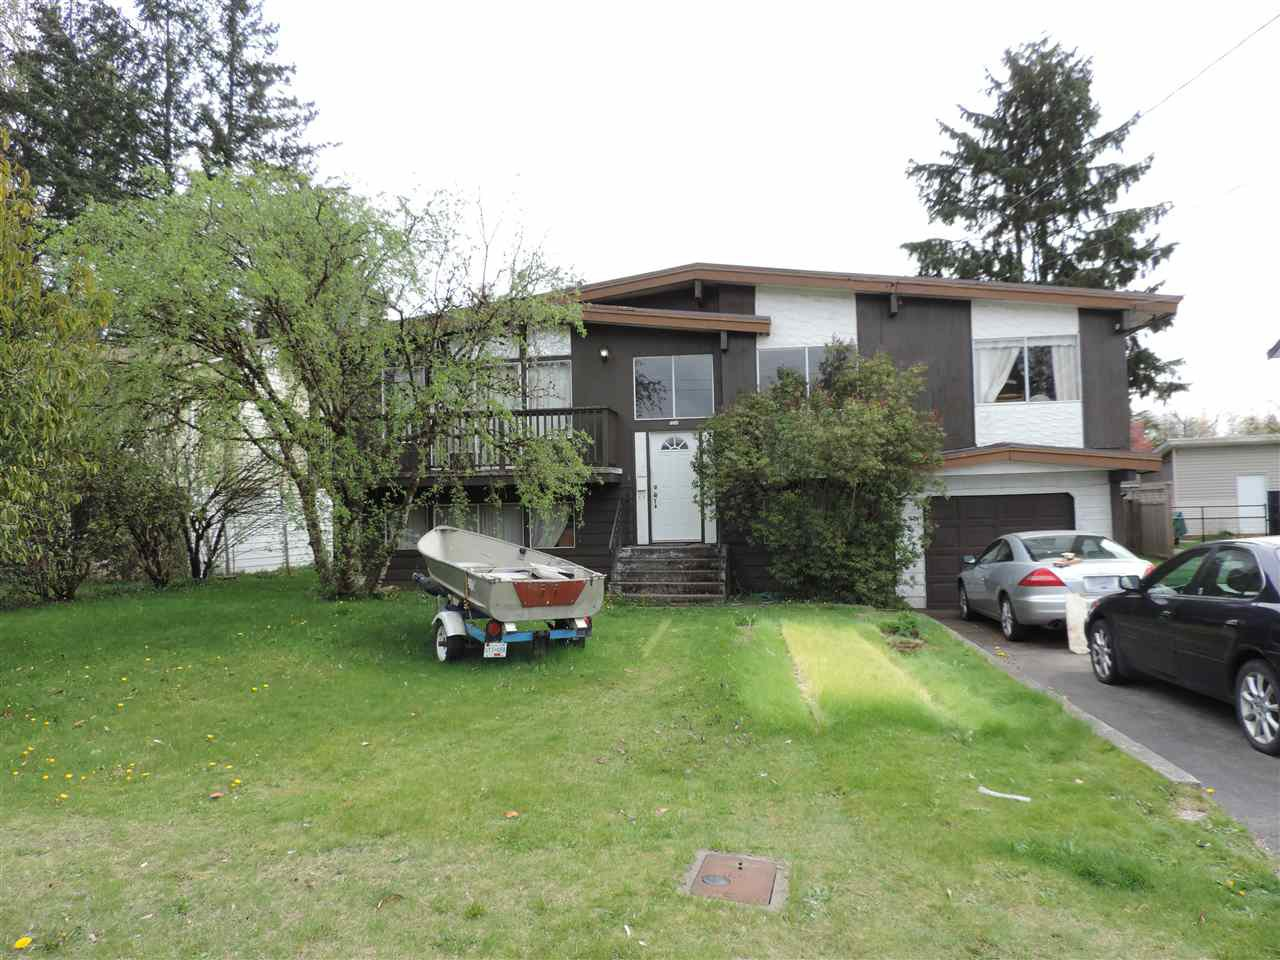 Photo 4: Photos: 7546 MARTIN Place in Mission: Mission BC House for sale : MLS®# R2360102